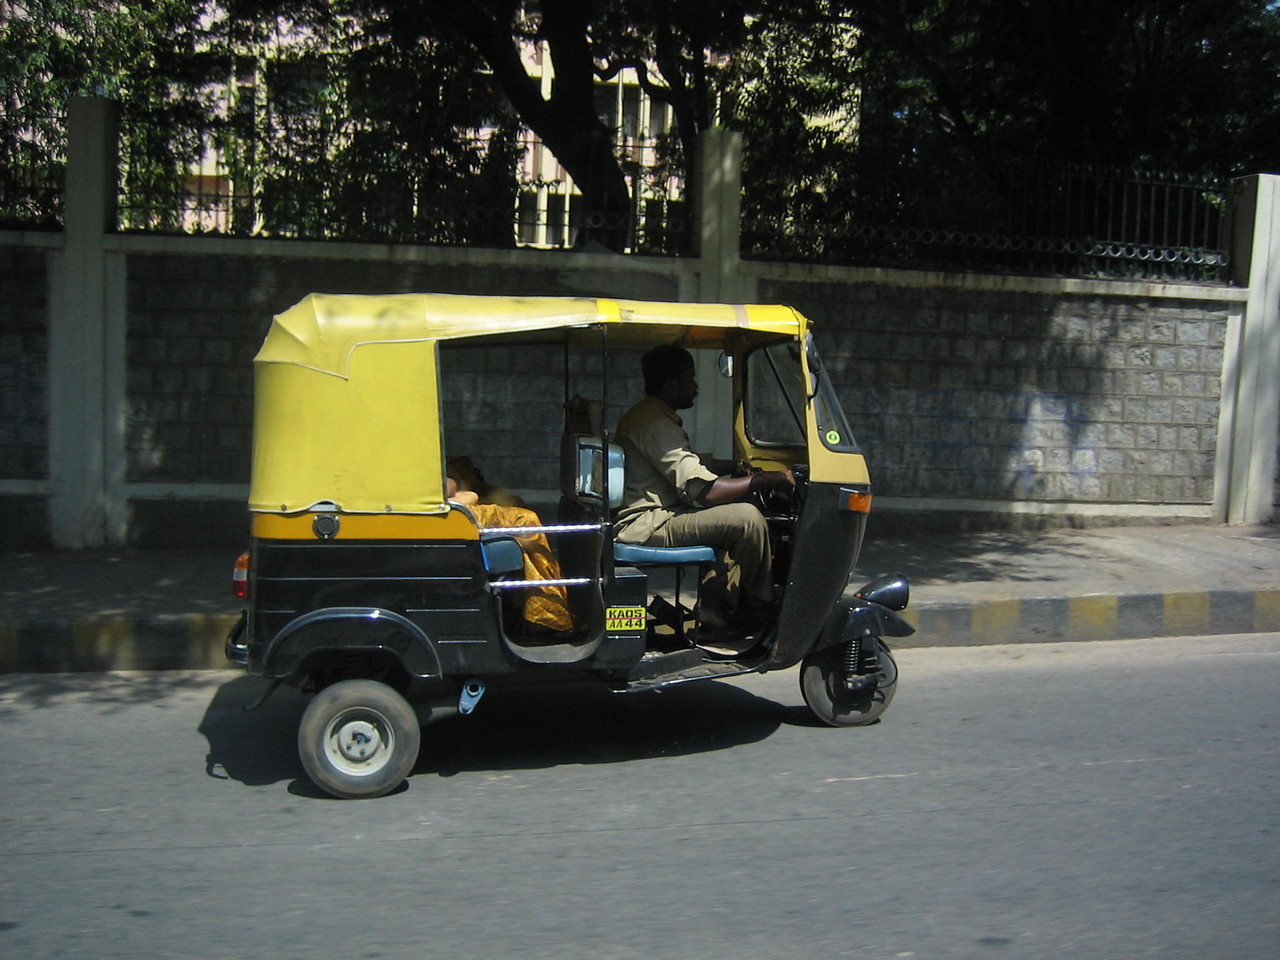 Motorized rickshaw. They don't really fit three people in the back very well.